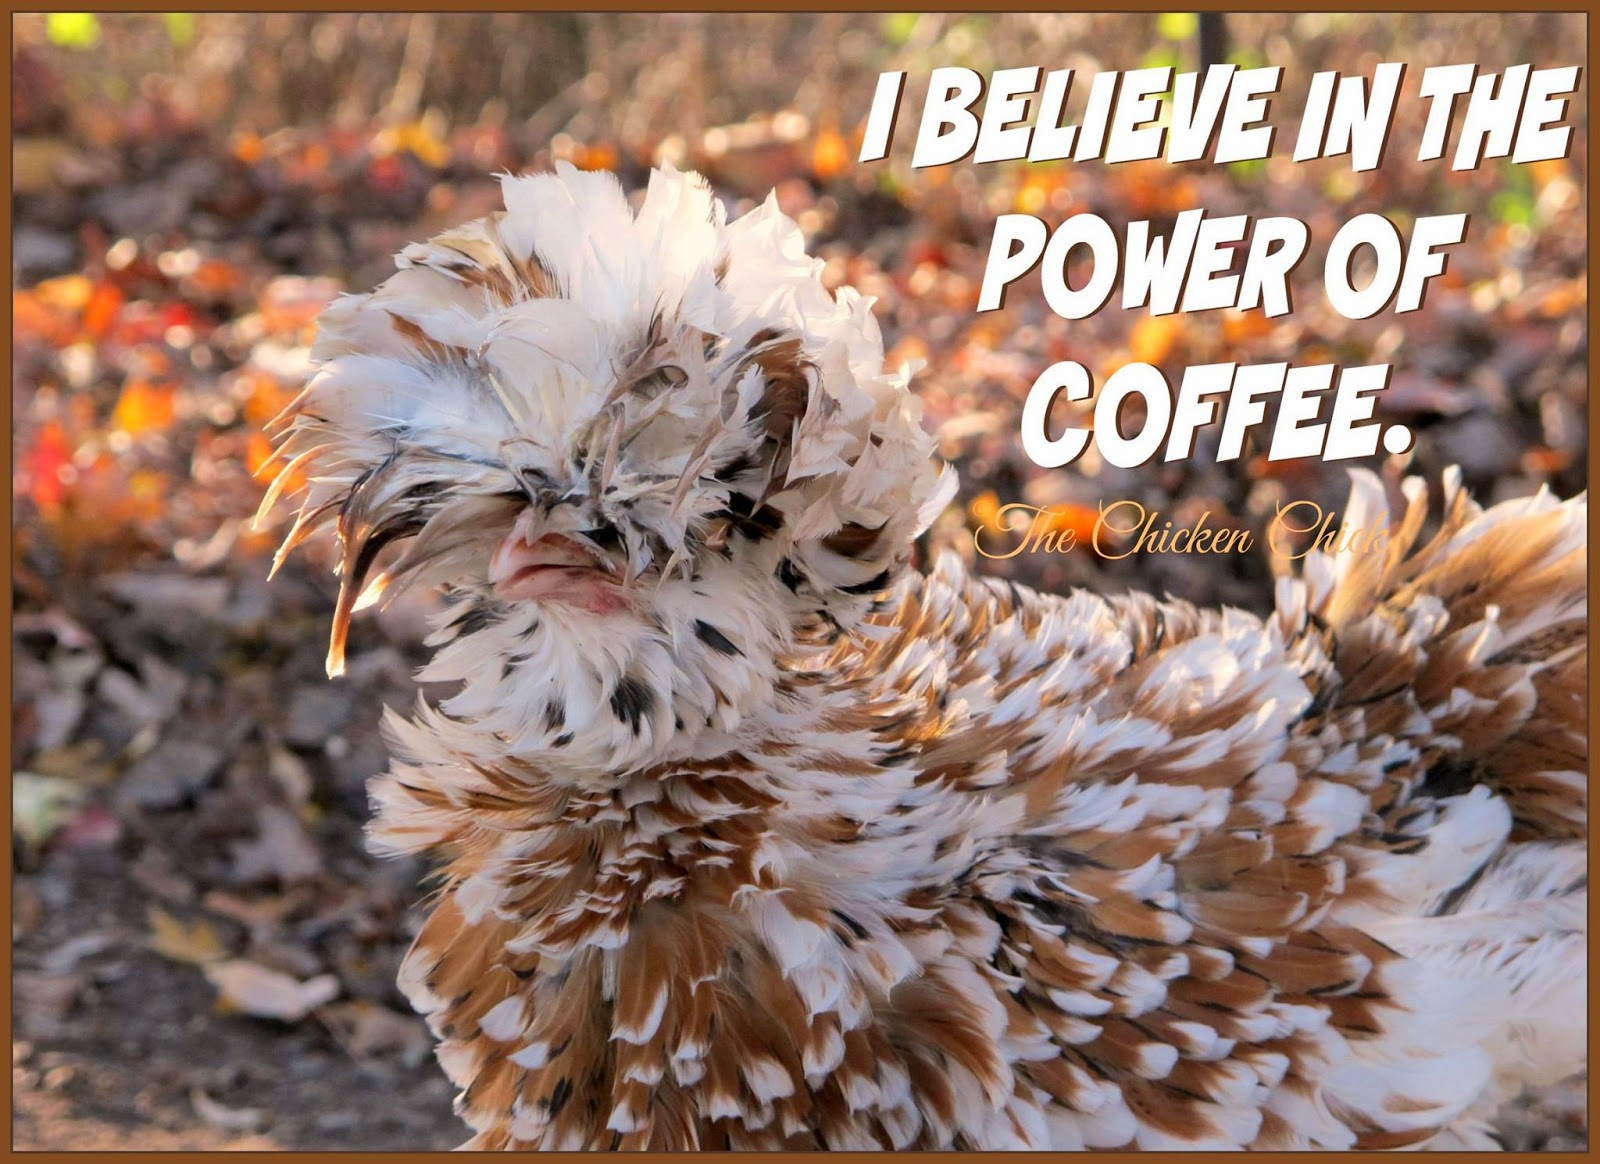 I believe in the power of coffee.